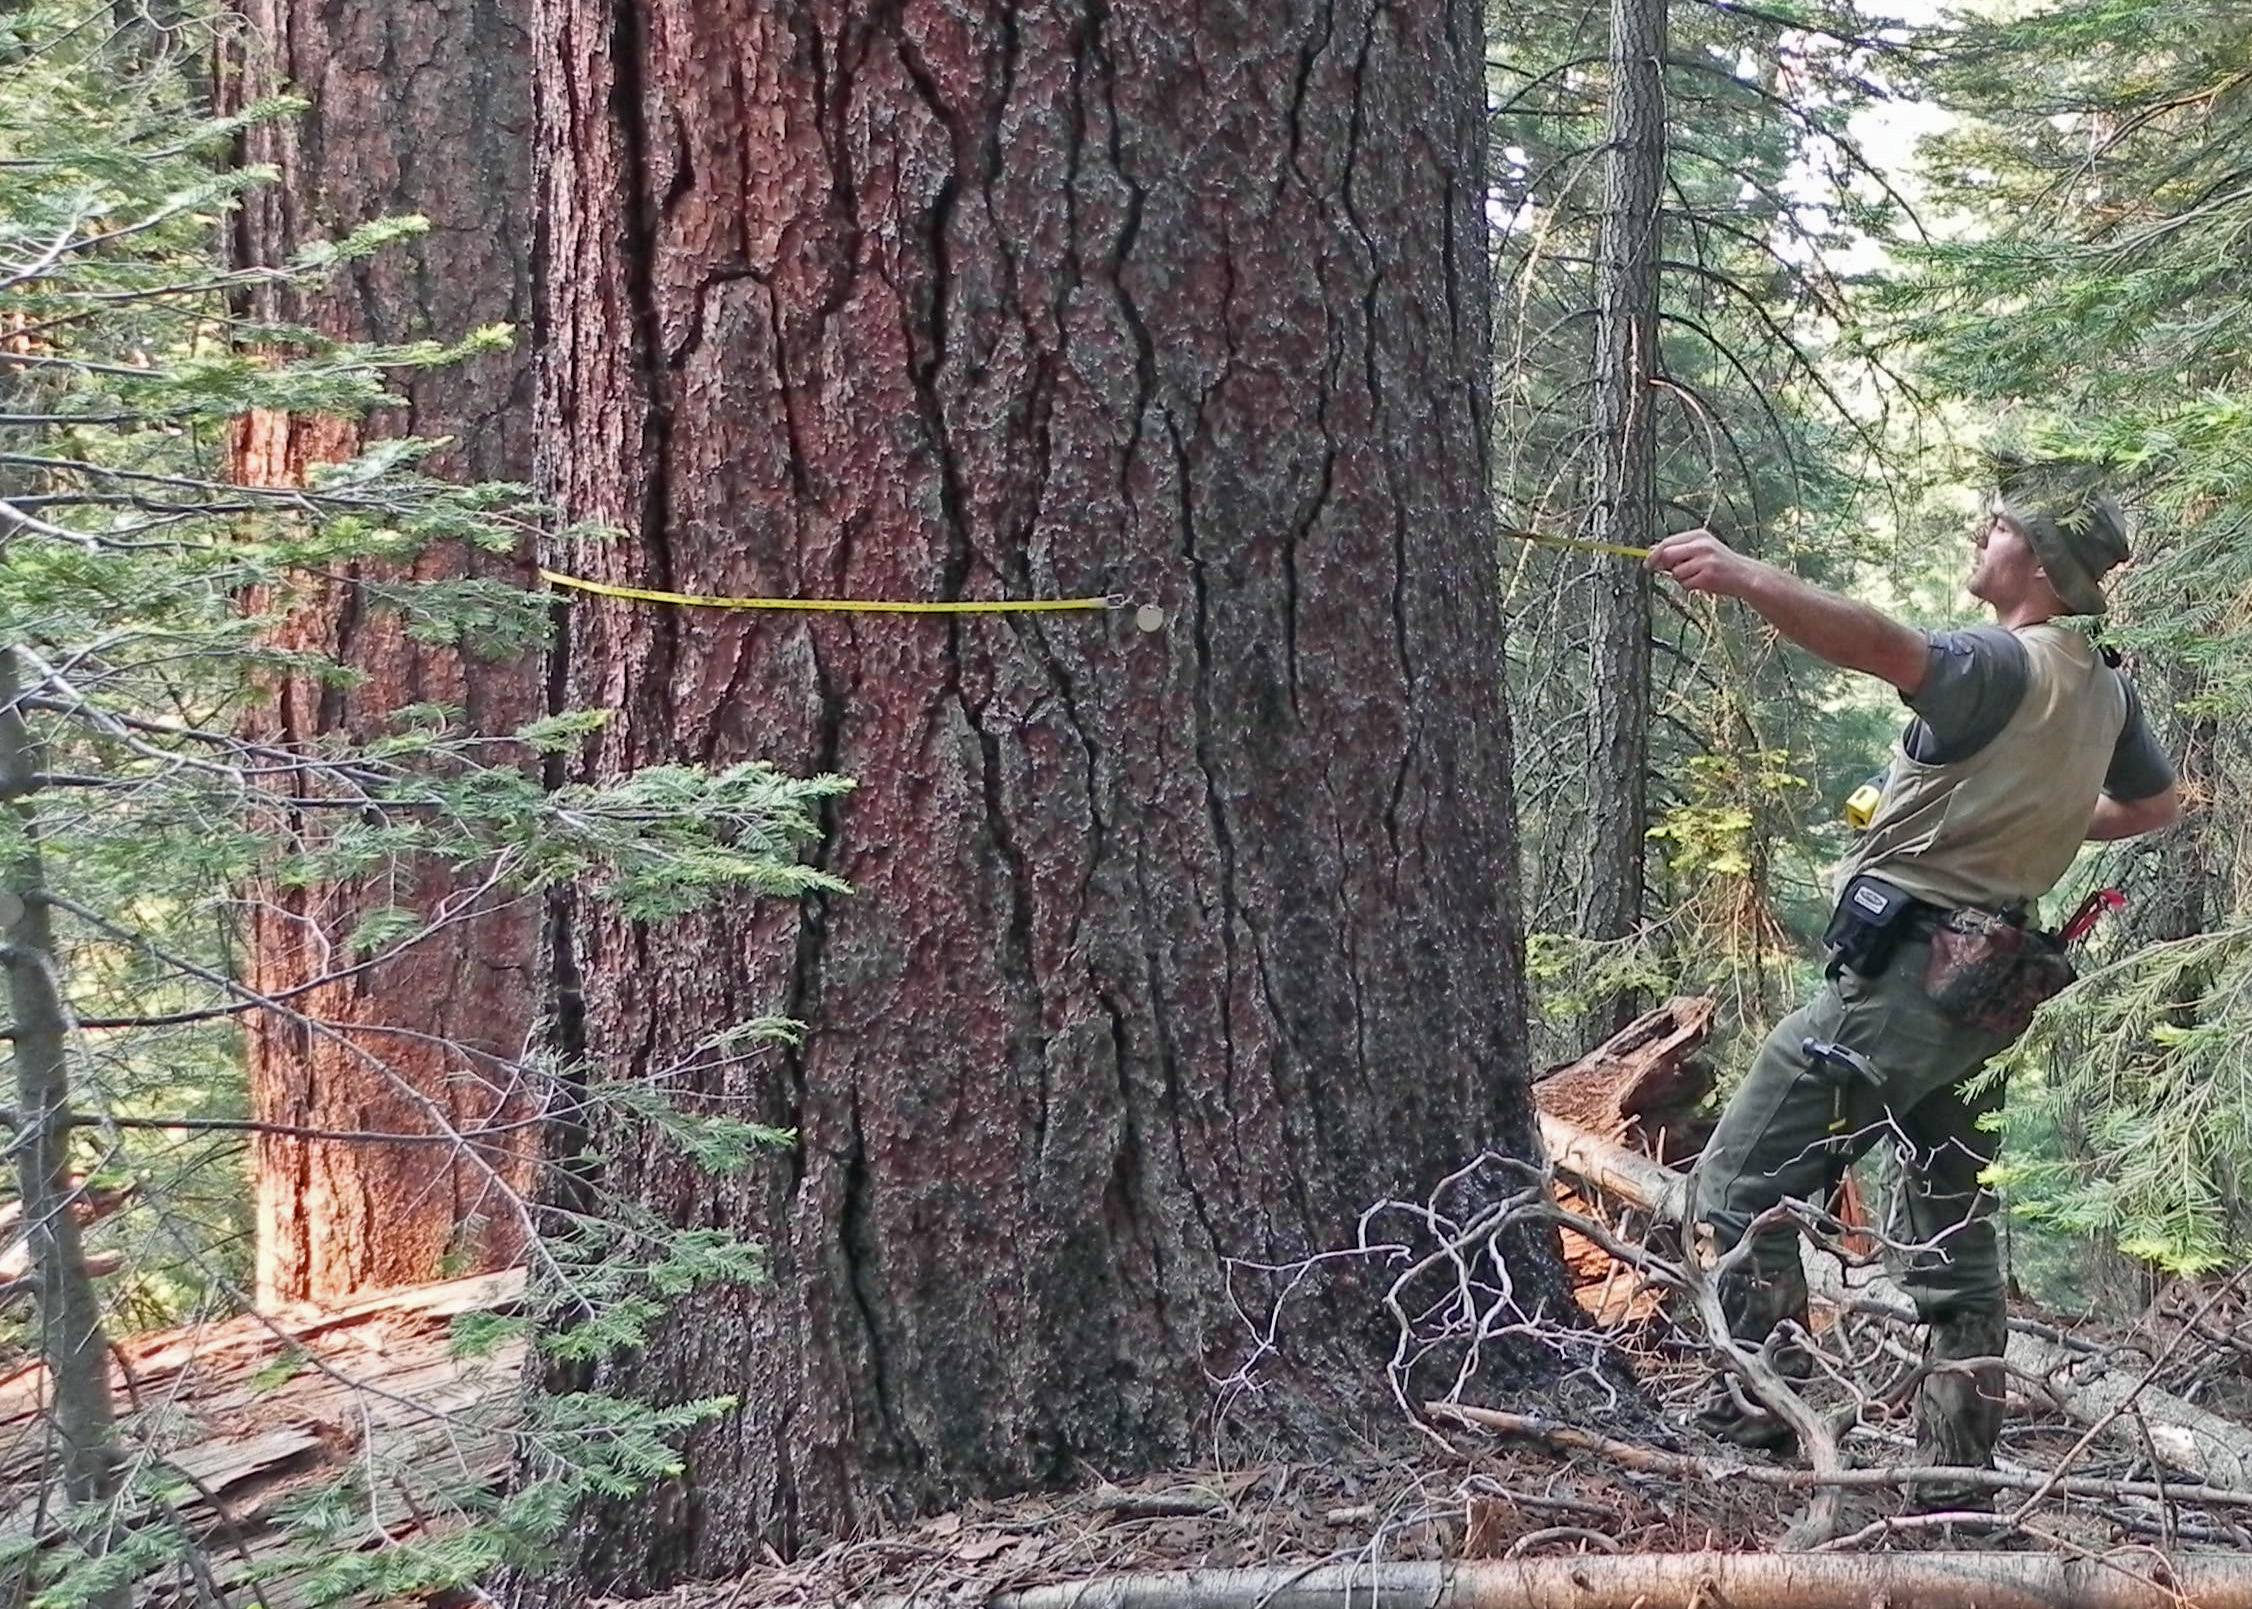 Washington State University's Mark Swanson pulls a tape tight around a 4-foot-wide sugar pine, one of the 34,500 live trees counted and tagged for long-term study in a Yosemite National Park study plot.